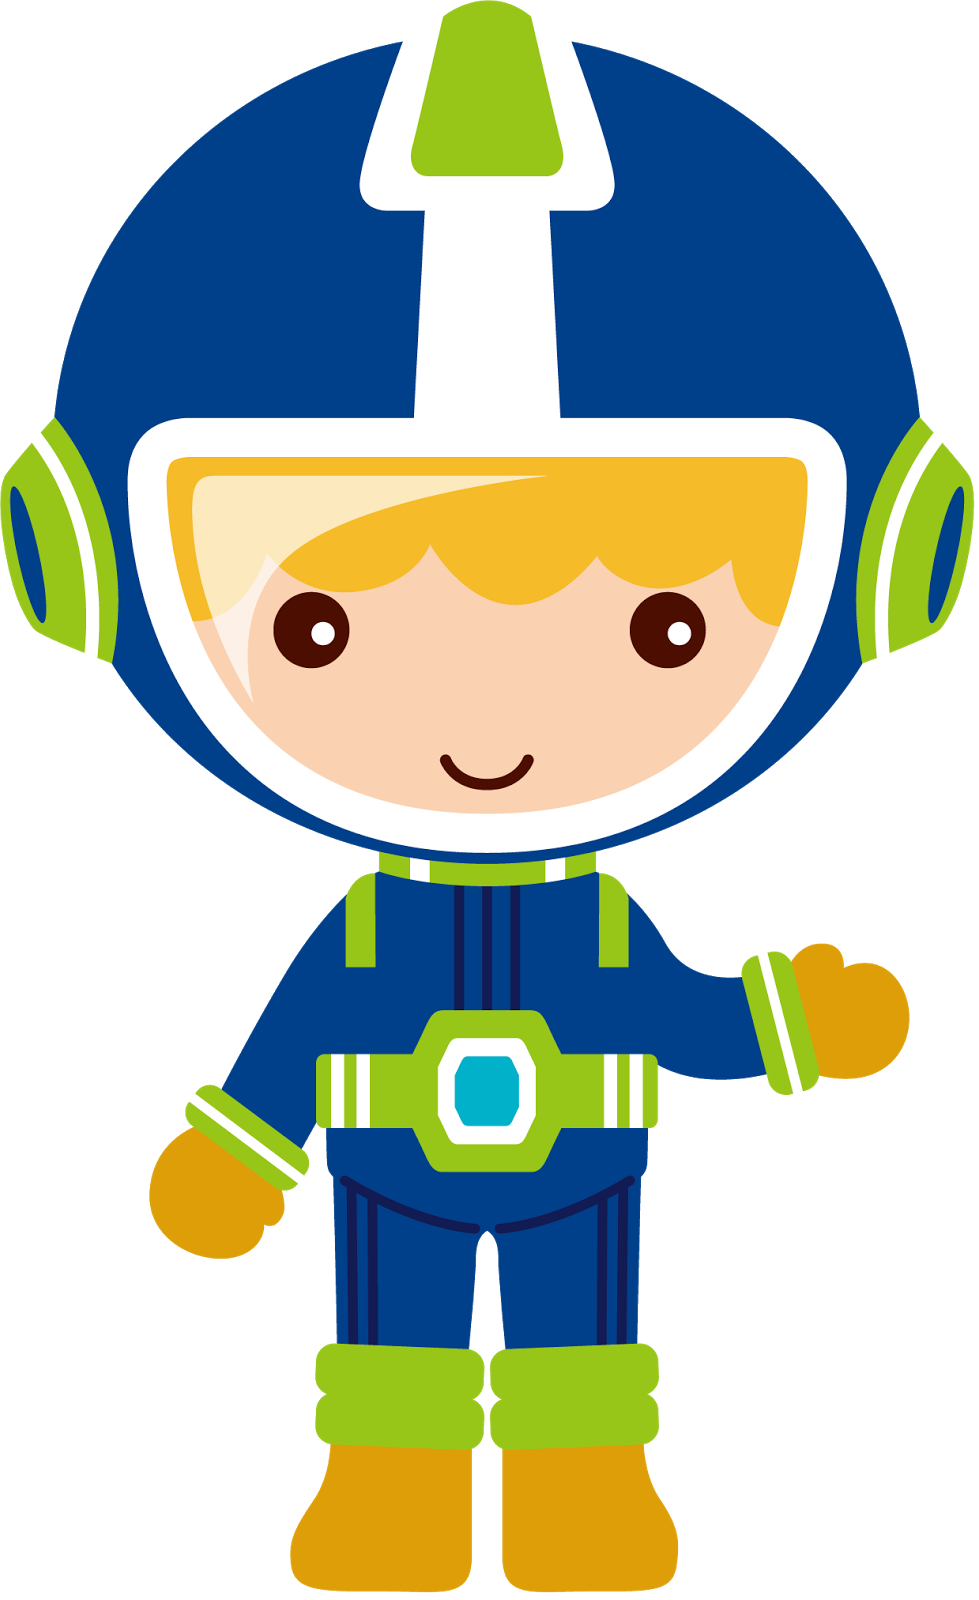 astronauts in space clipart - photo #25